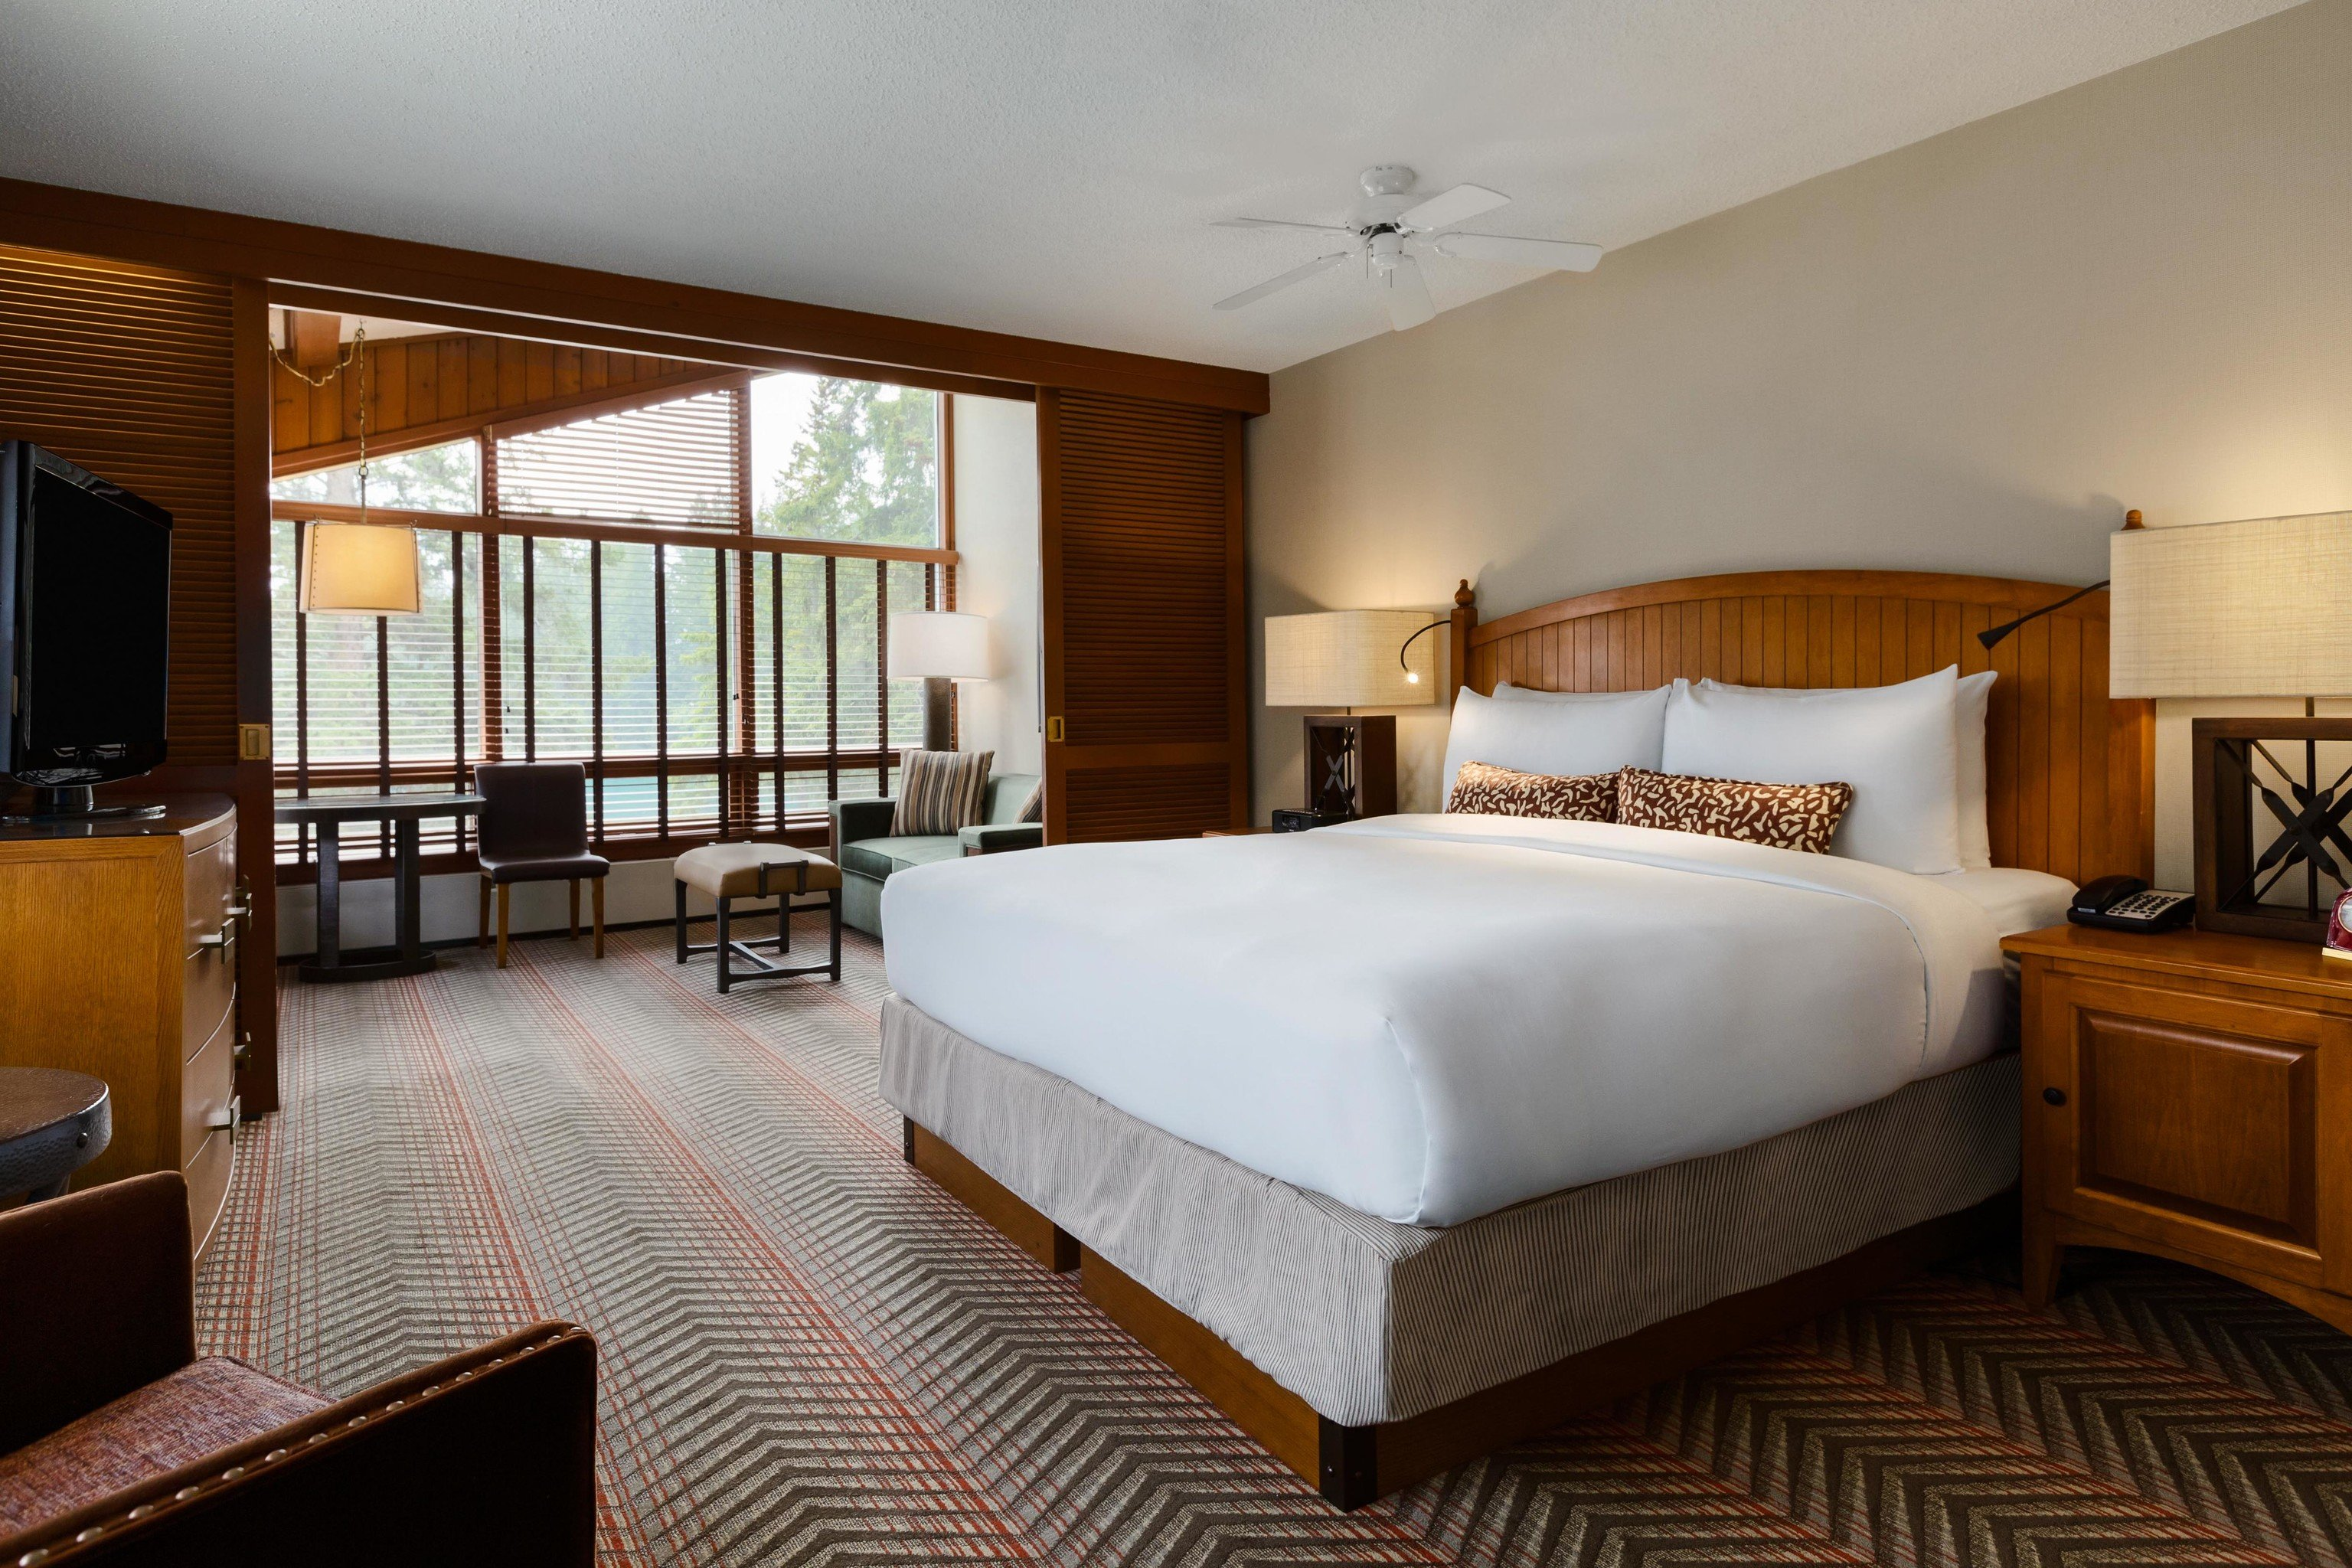 Alberta Boutique Hotels Canada Hotels indoor bed wall room floor Bedroom ceiling sofa hotel window Suite bed frame real estate interior design furniture estate boarding house mattress decorated containing several